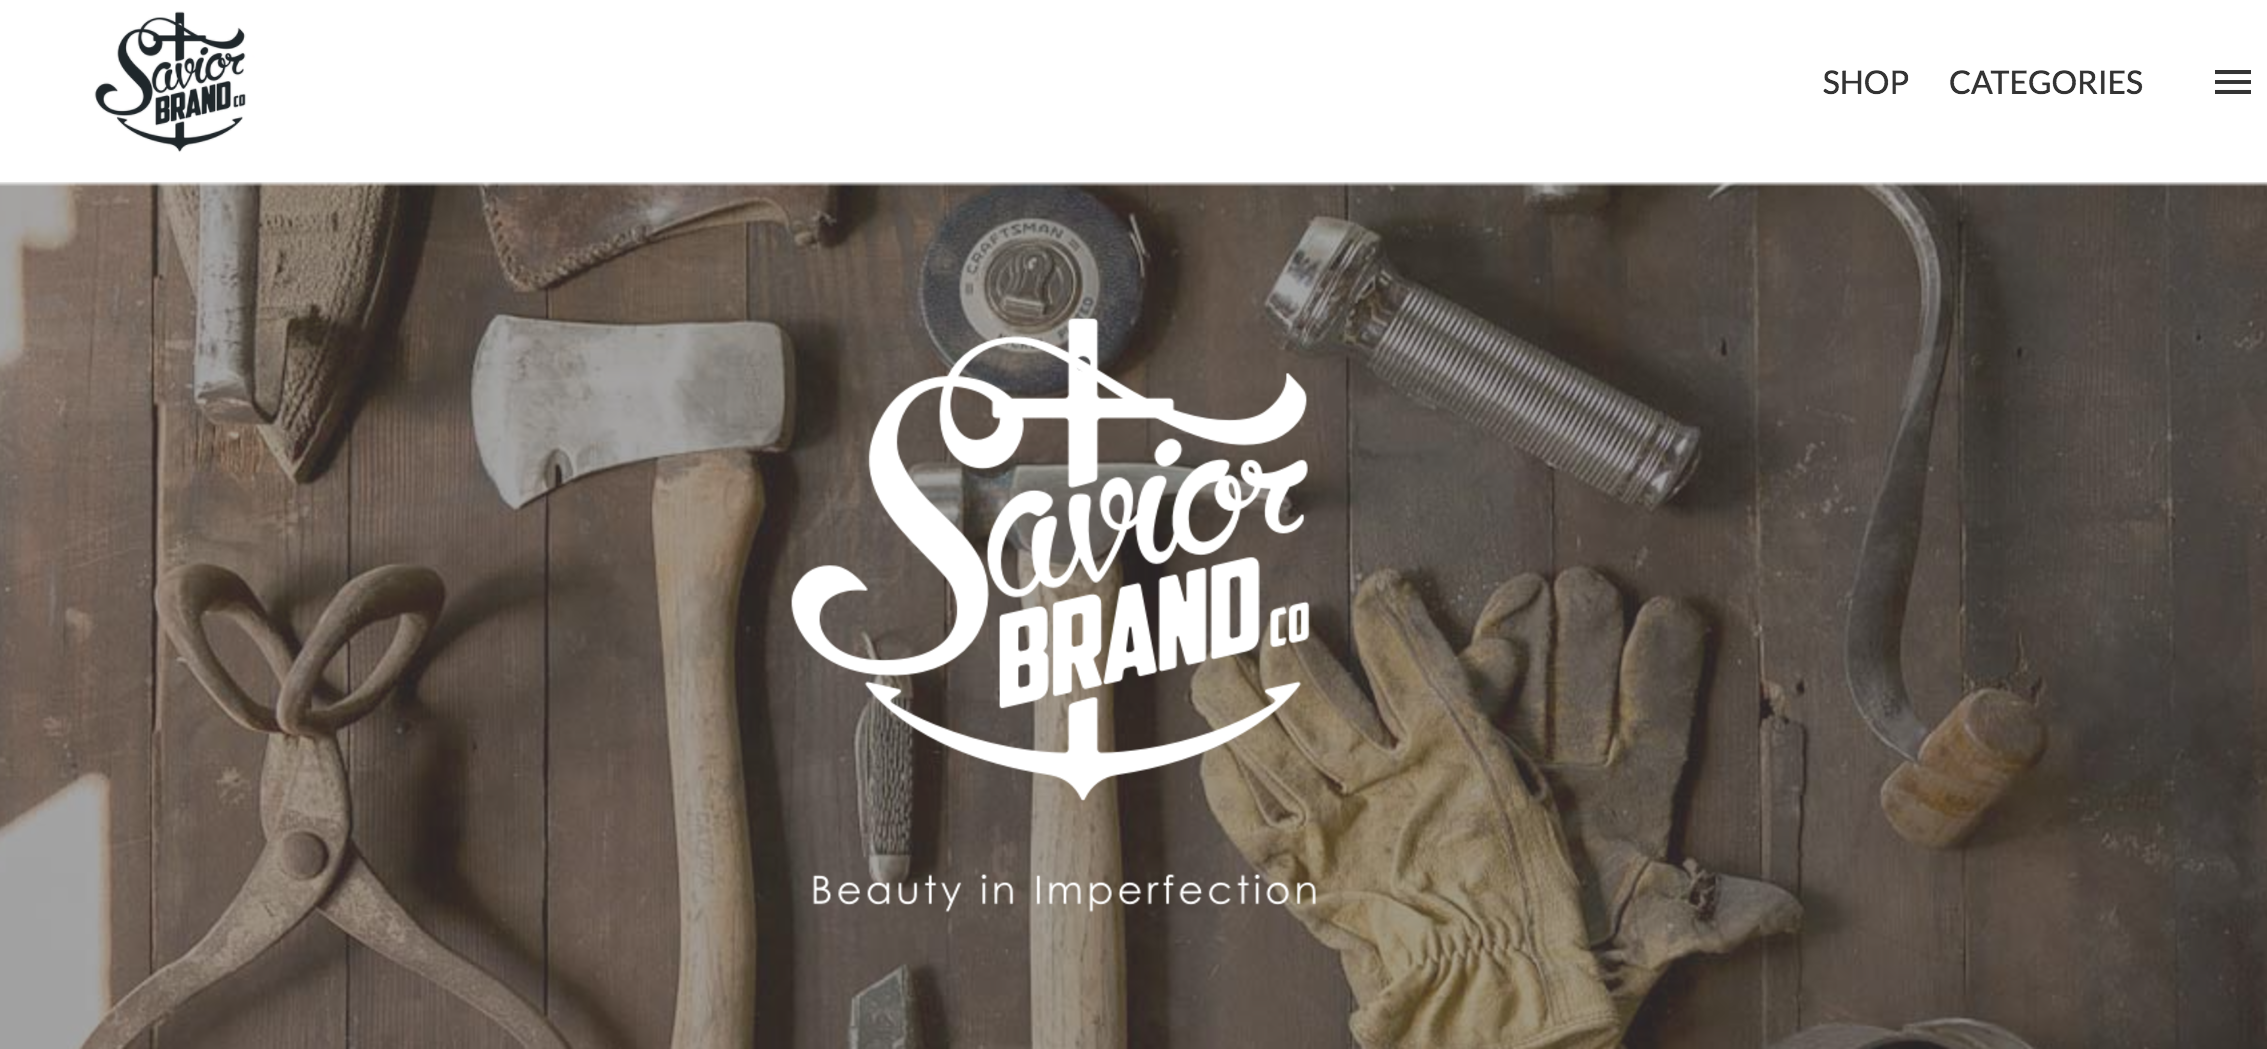 Savior Brand Co leather goods south africa